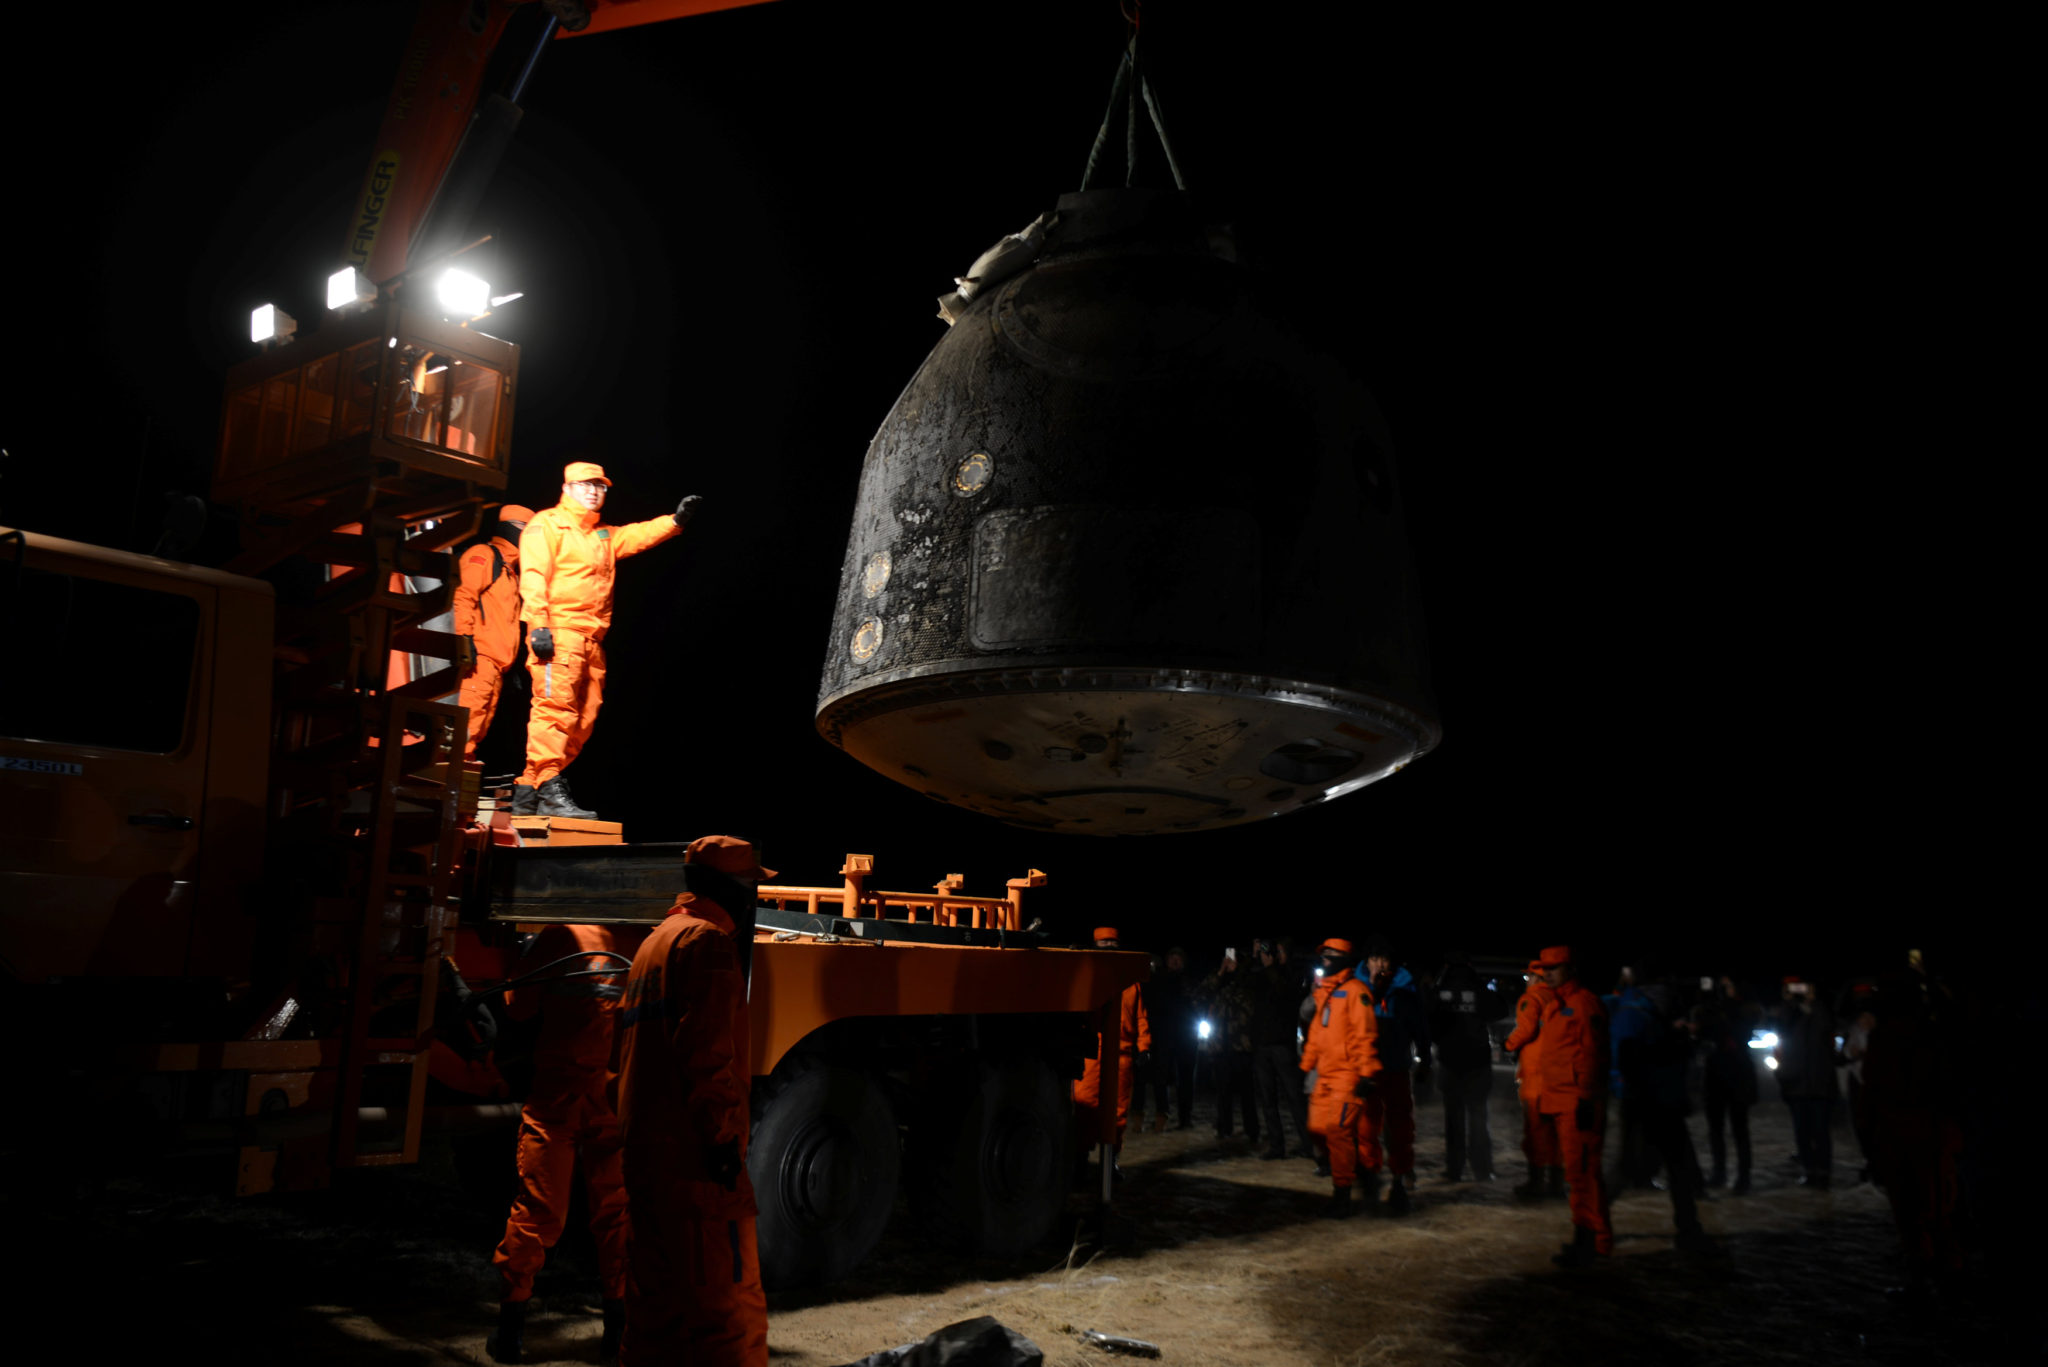 The re-entry capsule of China's Shenzhou-11 spacecraft is loaded on a truck, north of Inner Mongolia Autonomous Region, China, November 18, 2016. China Daily/via REUTERS